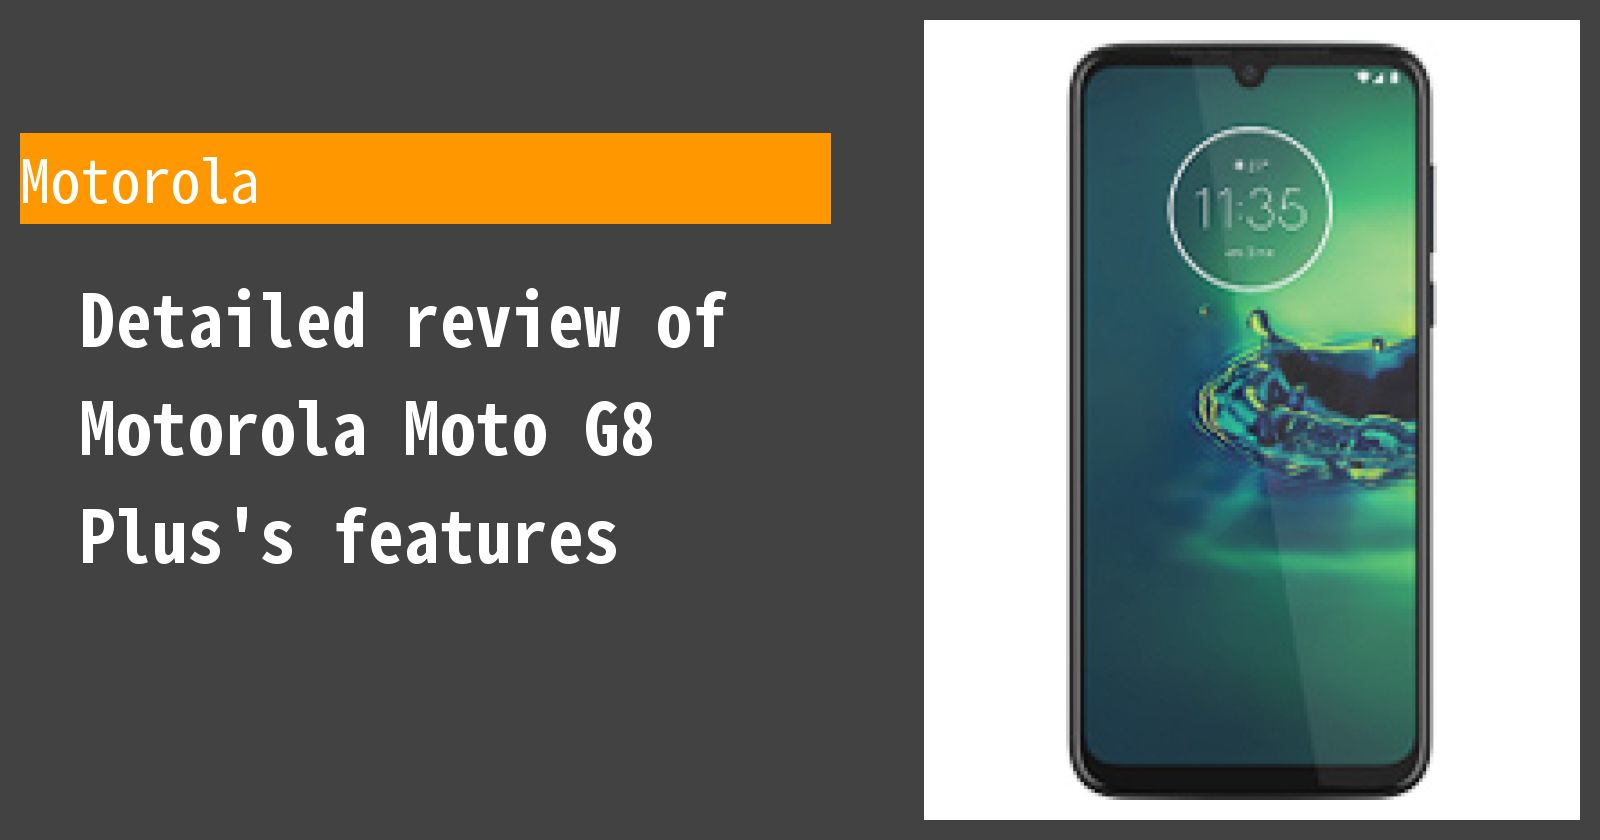 Detailed review of Motorola Moto G8 Plus's features